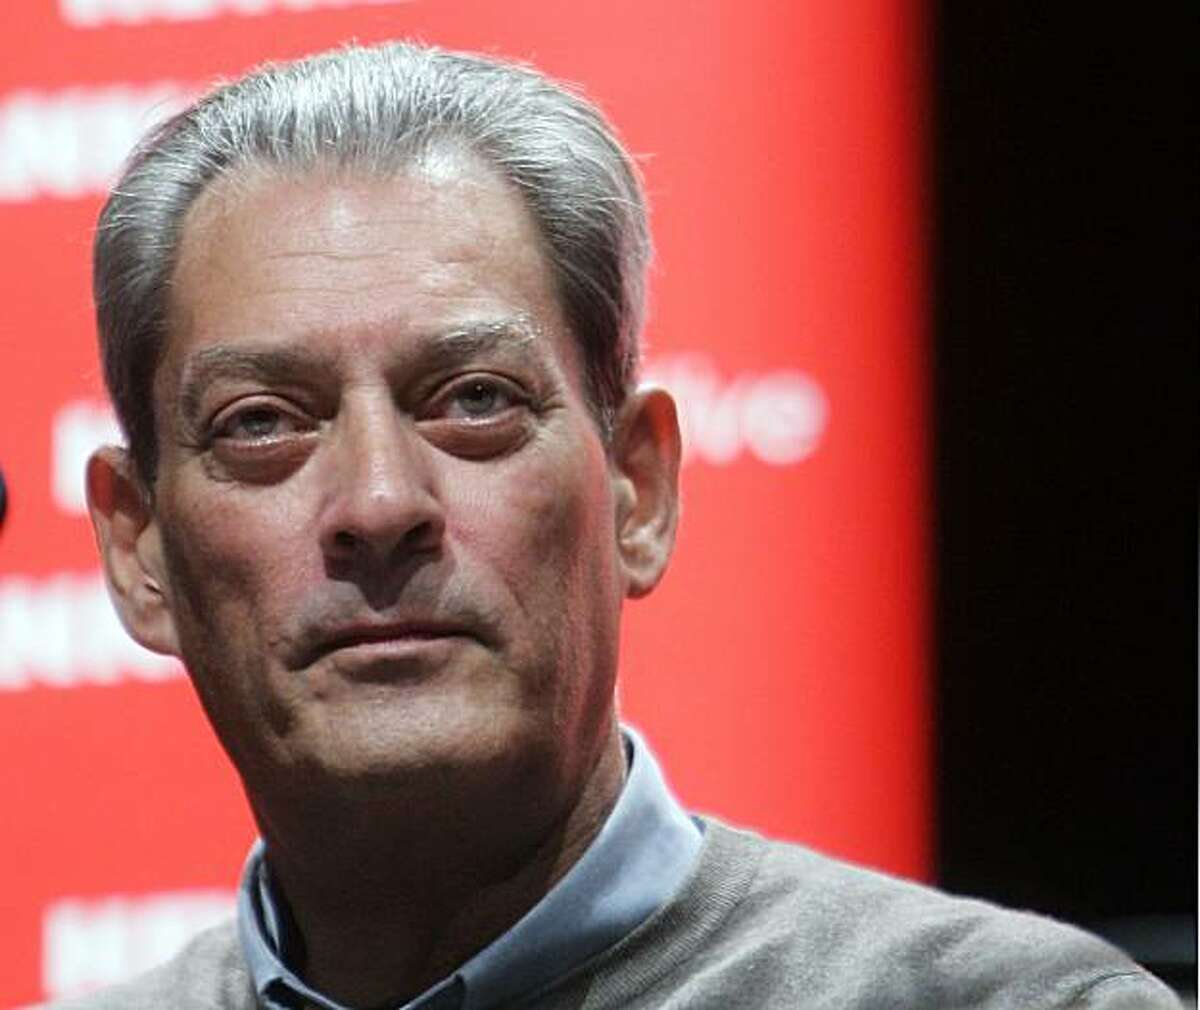 HAMBURG, GERMANY - SEPTEMBER 30: Best selling author Paul Auster lectures from his new book 'Man in Darkness' at Kampnagel on September 30, 2008 in Hamburg, Germany. (Photo by Krafft Angerer/Getty Images)